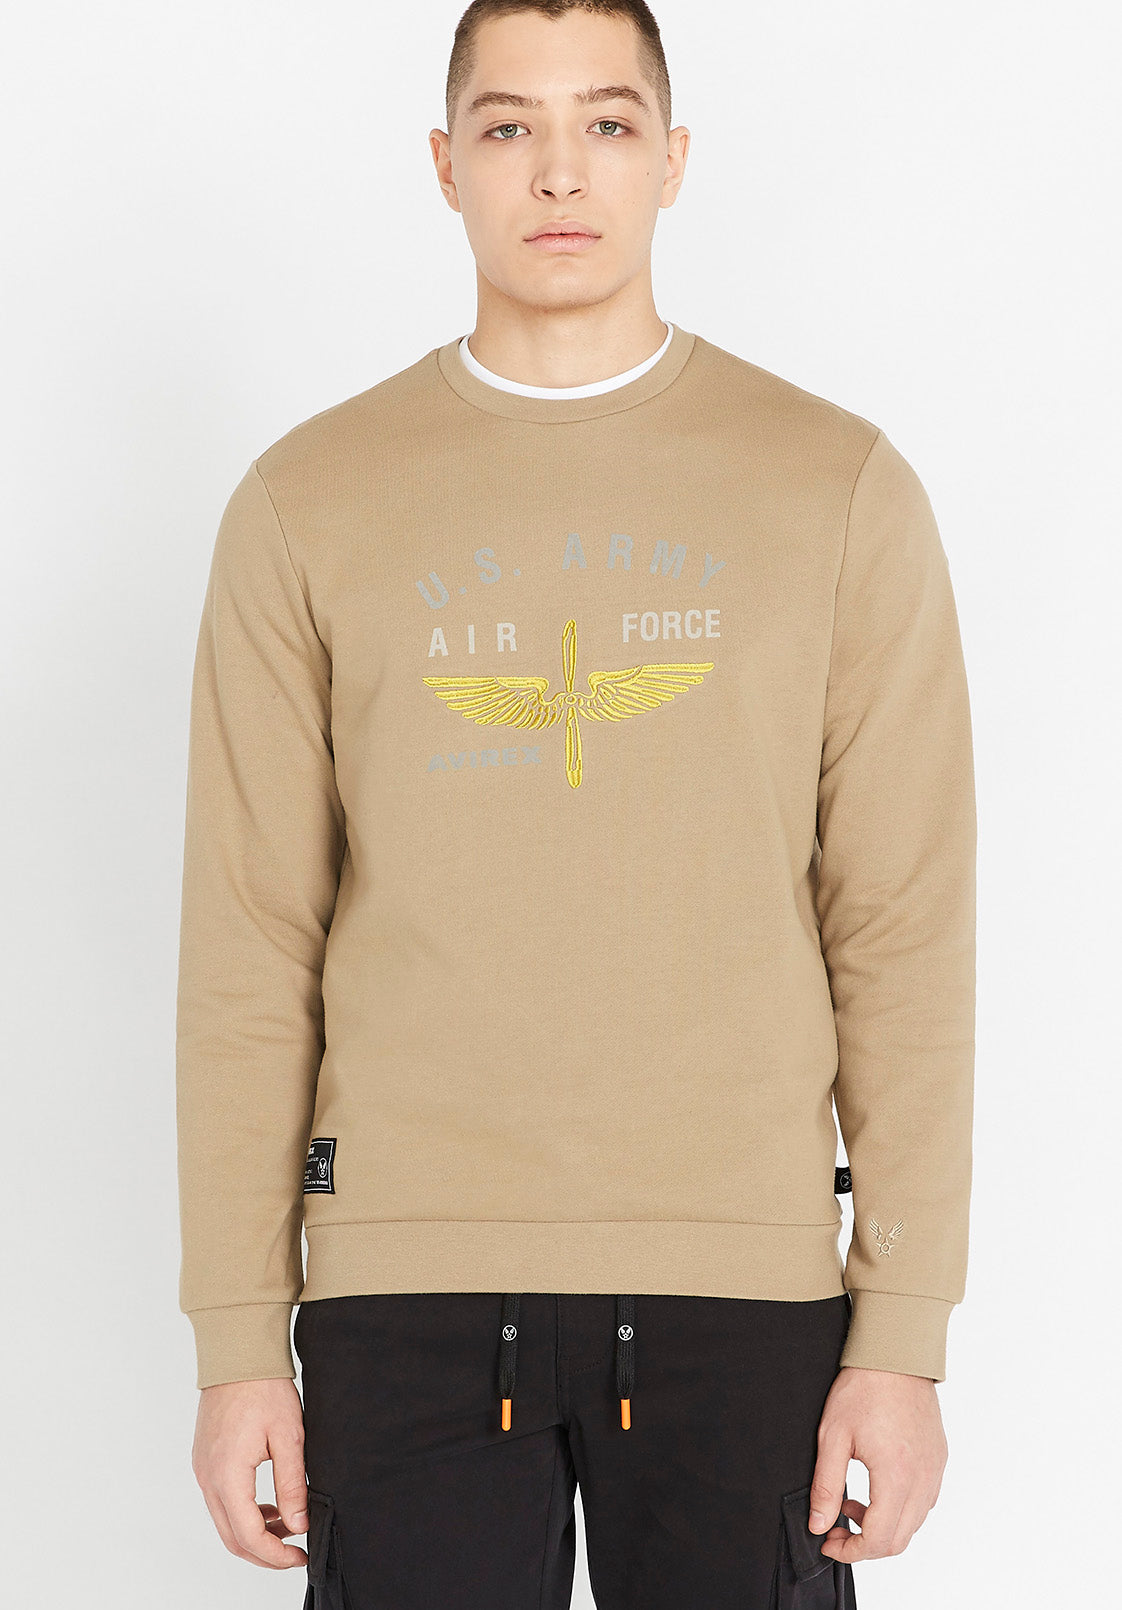 Men wearing a beige long sleeve crew neck sweater with front US Army white and yellow logo